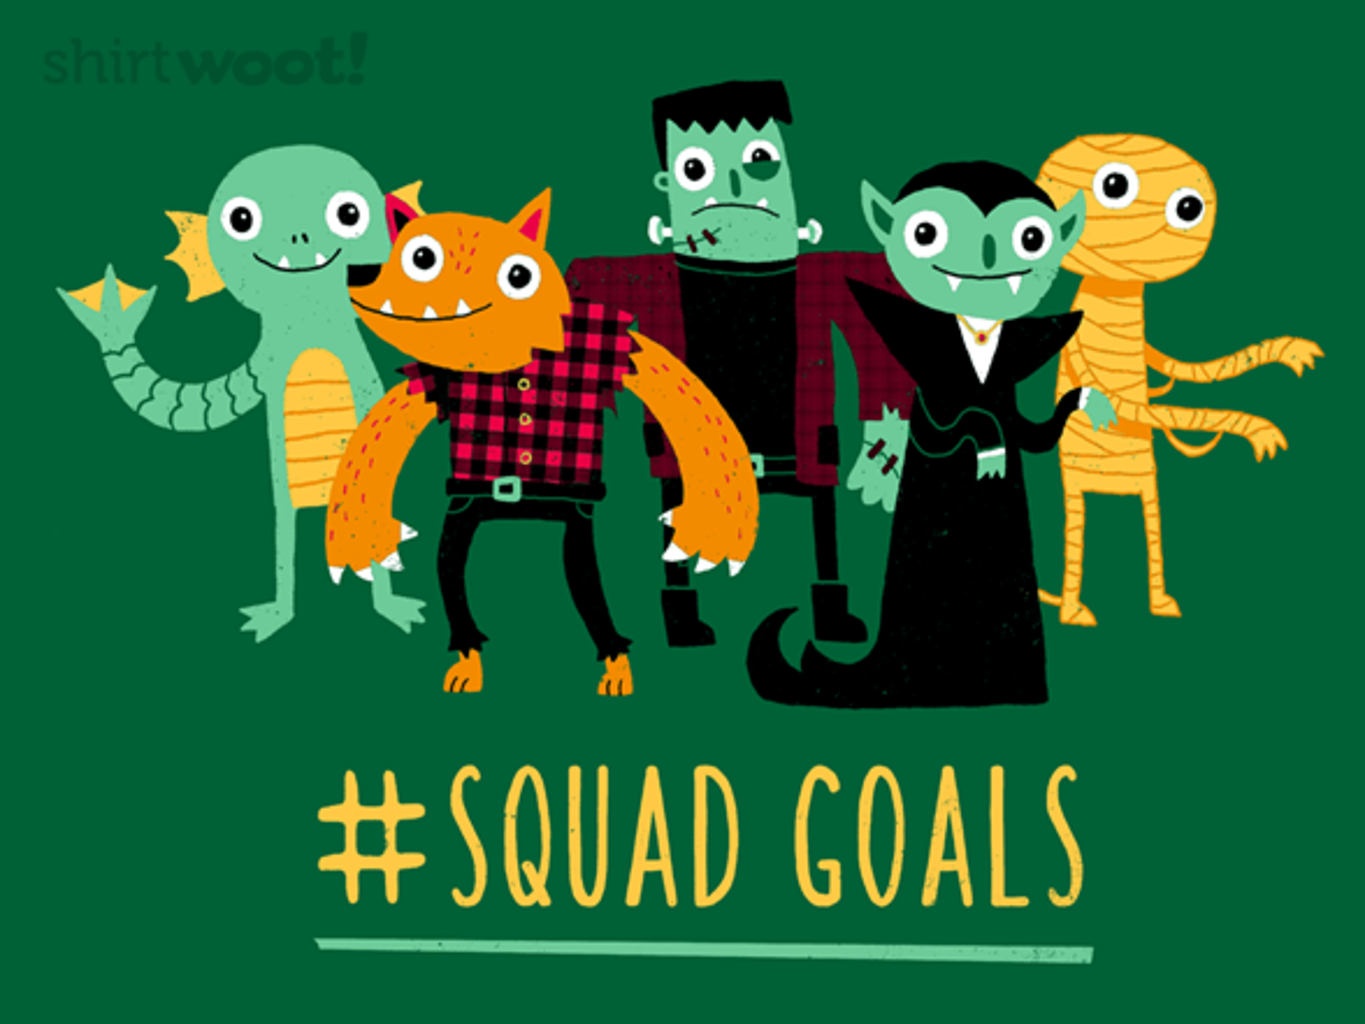 Woot!: Monster Squad Goals